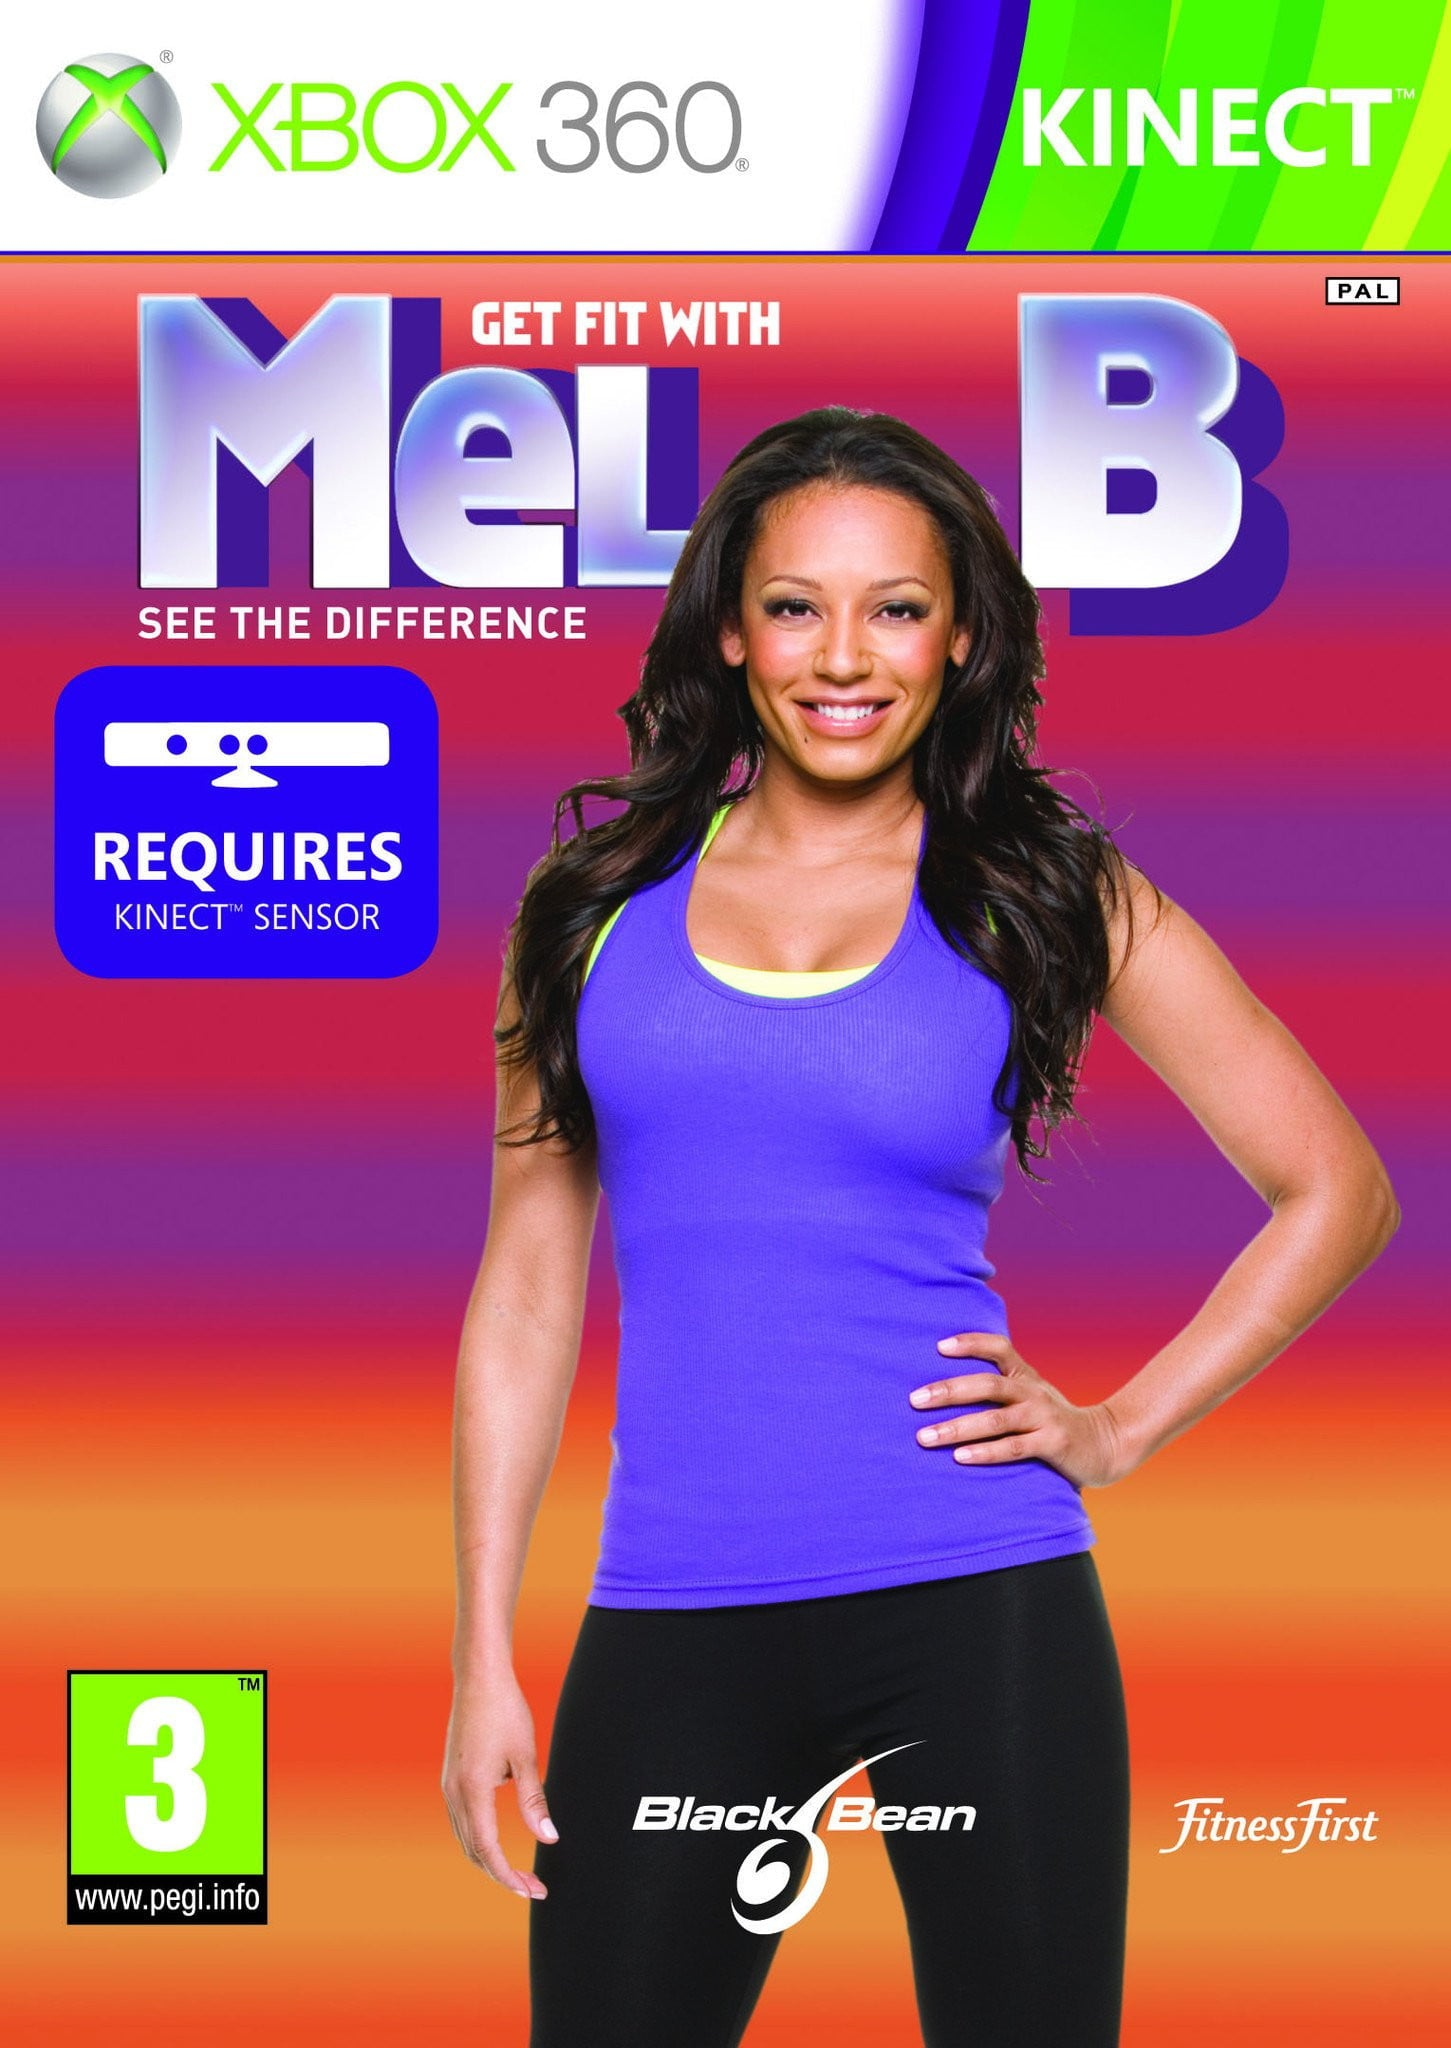 Get Fit With Mel B (XBOX 360) XBOX 360 Game - Shamy Stores